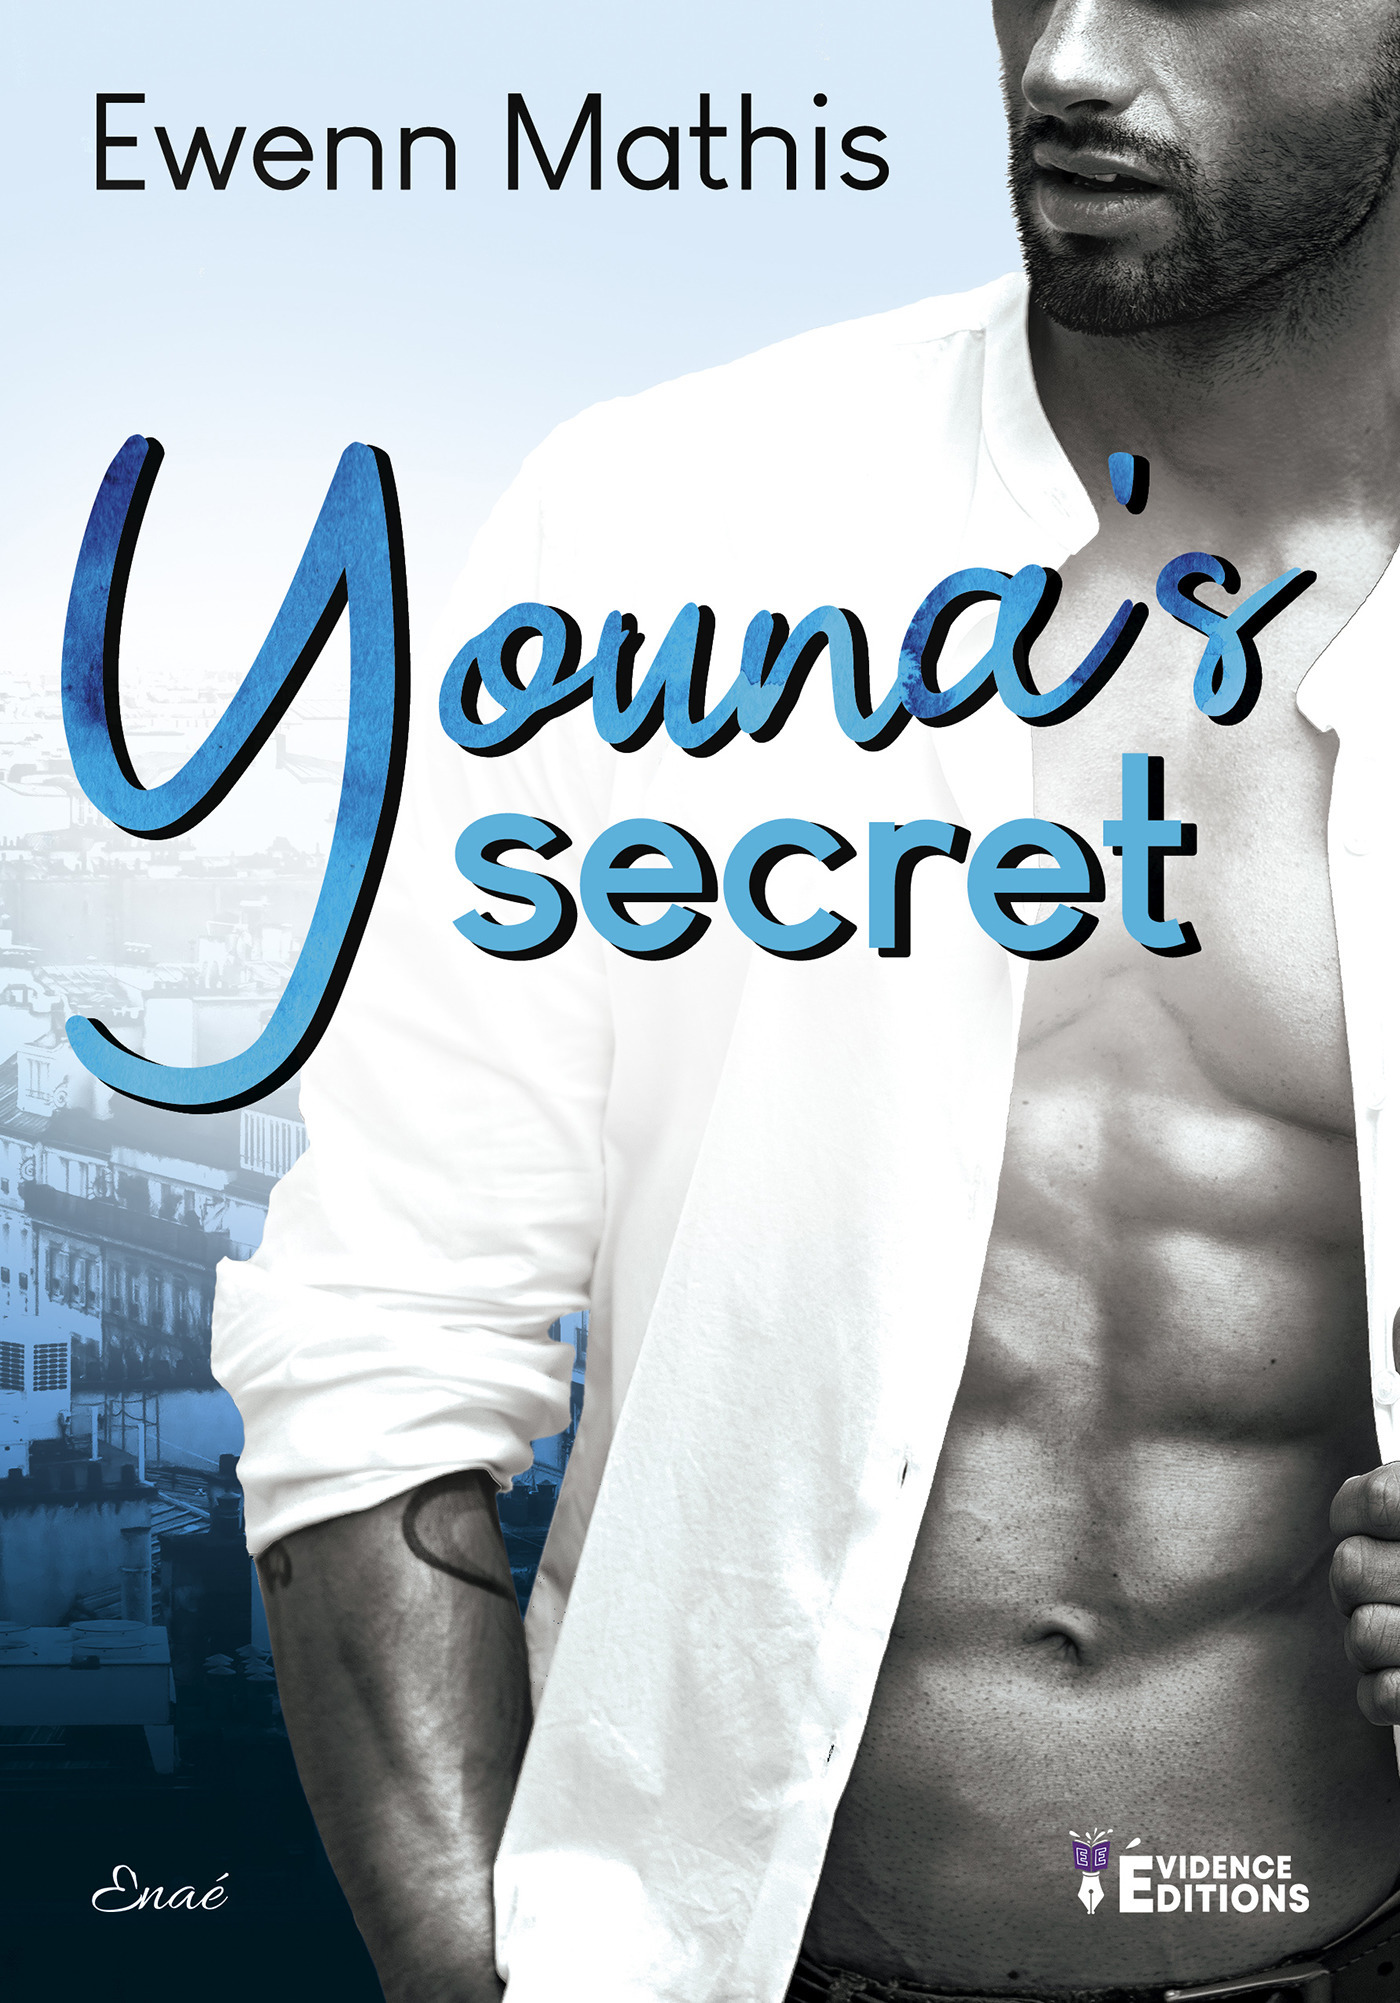 Youna s secret  - Ewenn Mathis